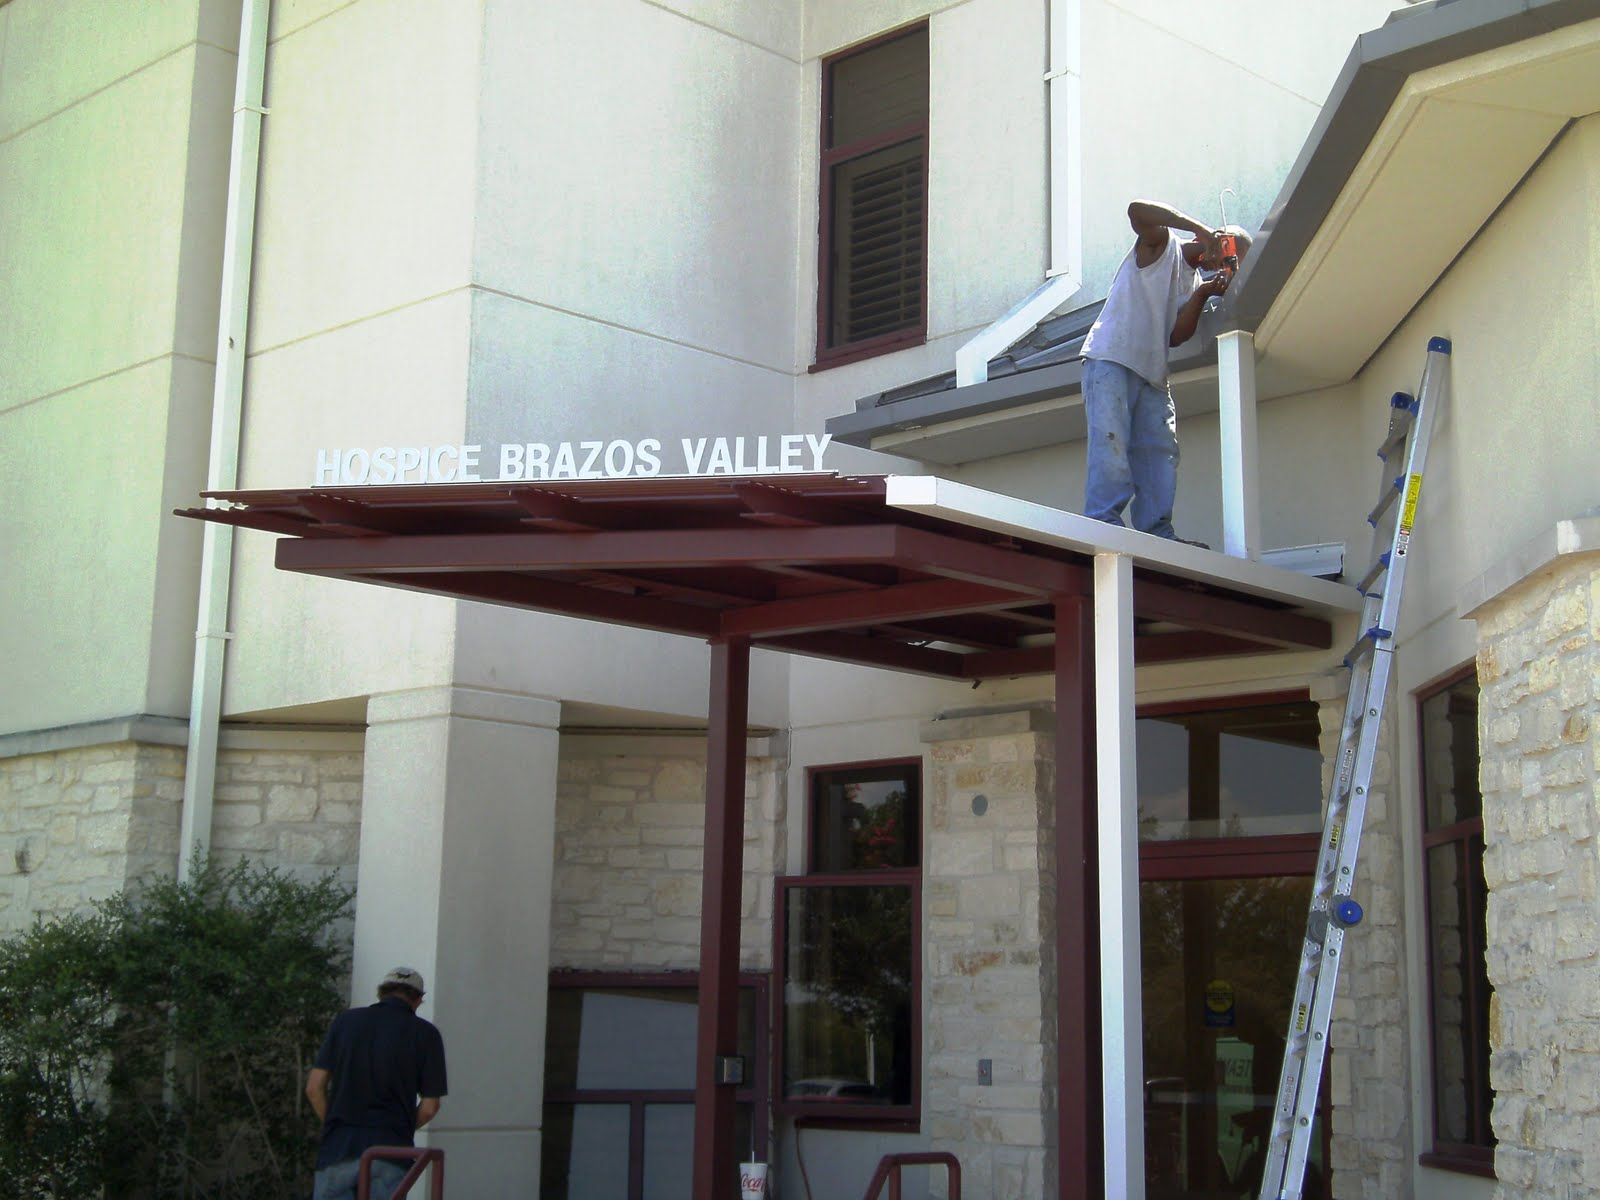 Fully Adhered Epdm And Gutters Hospice Brazos Valley